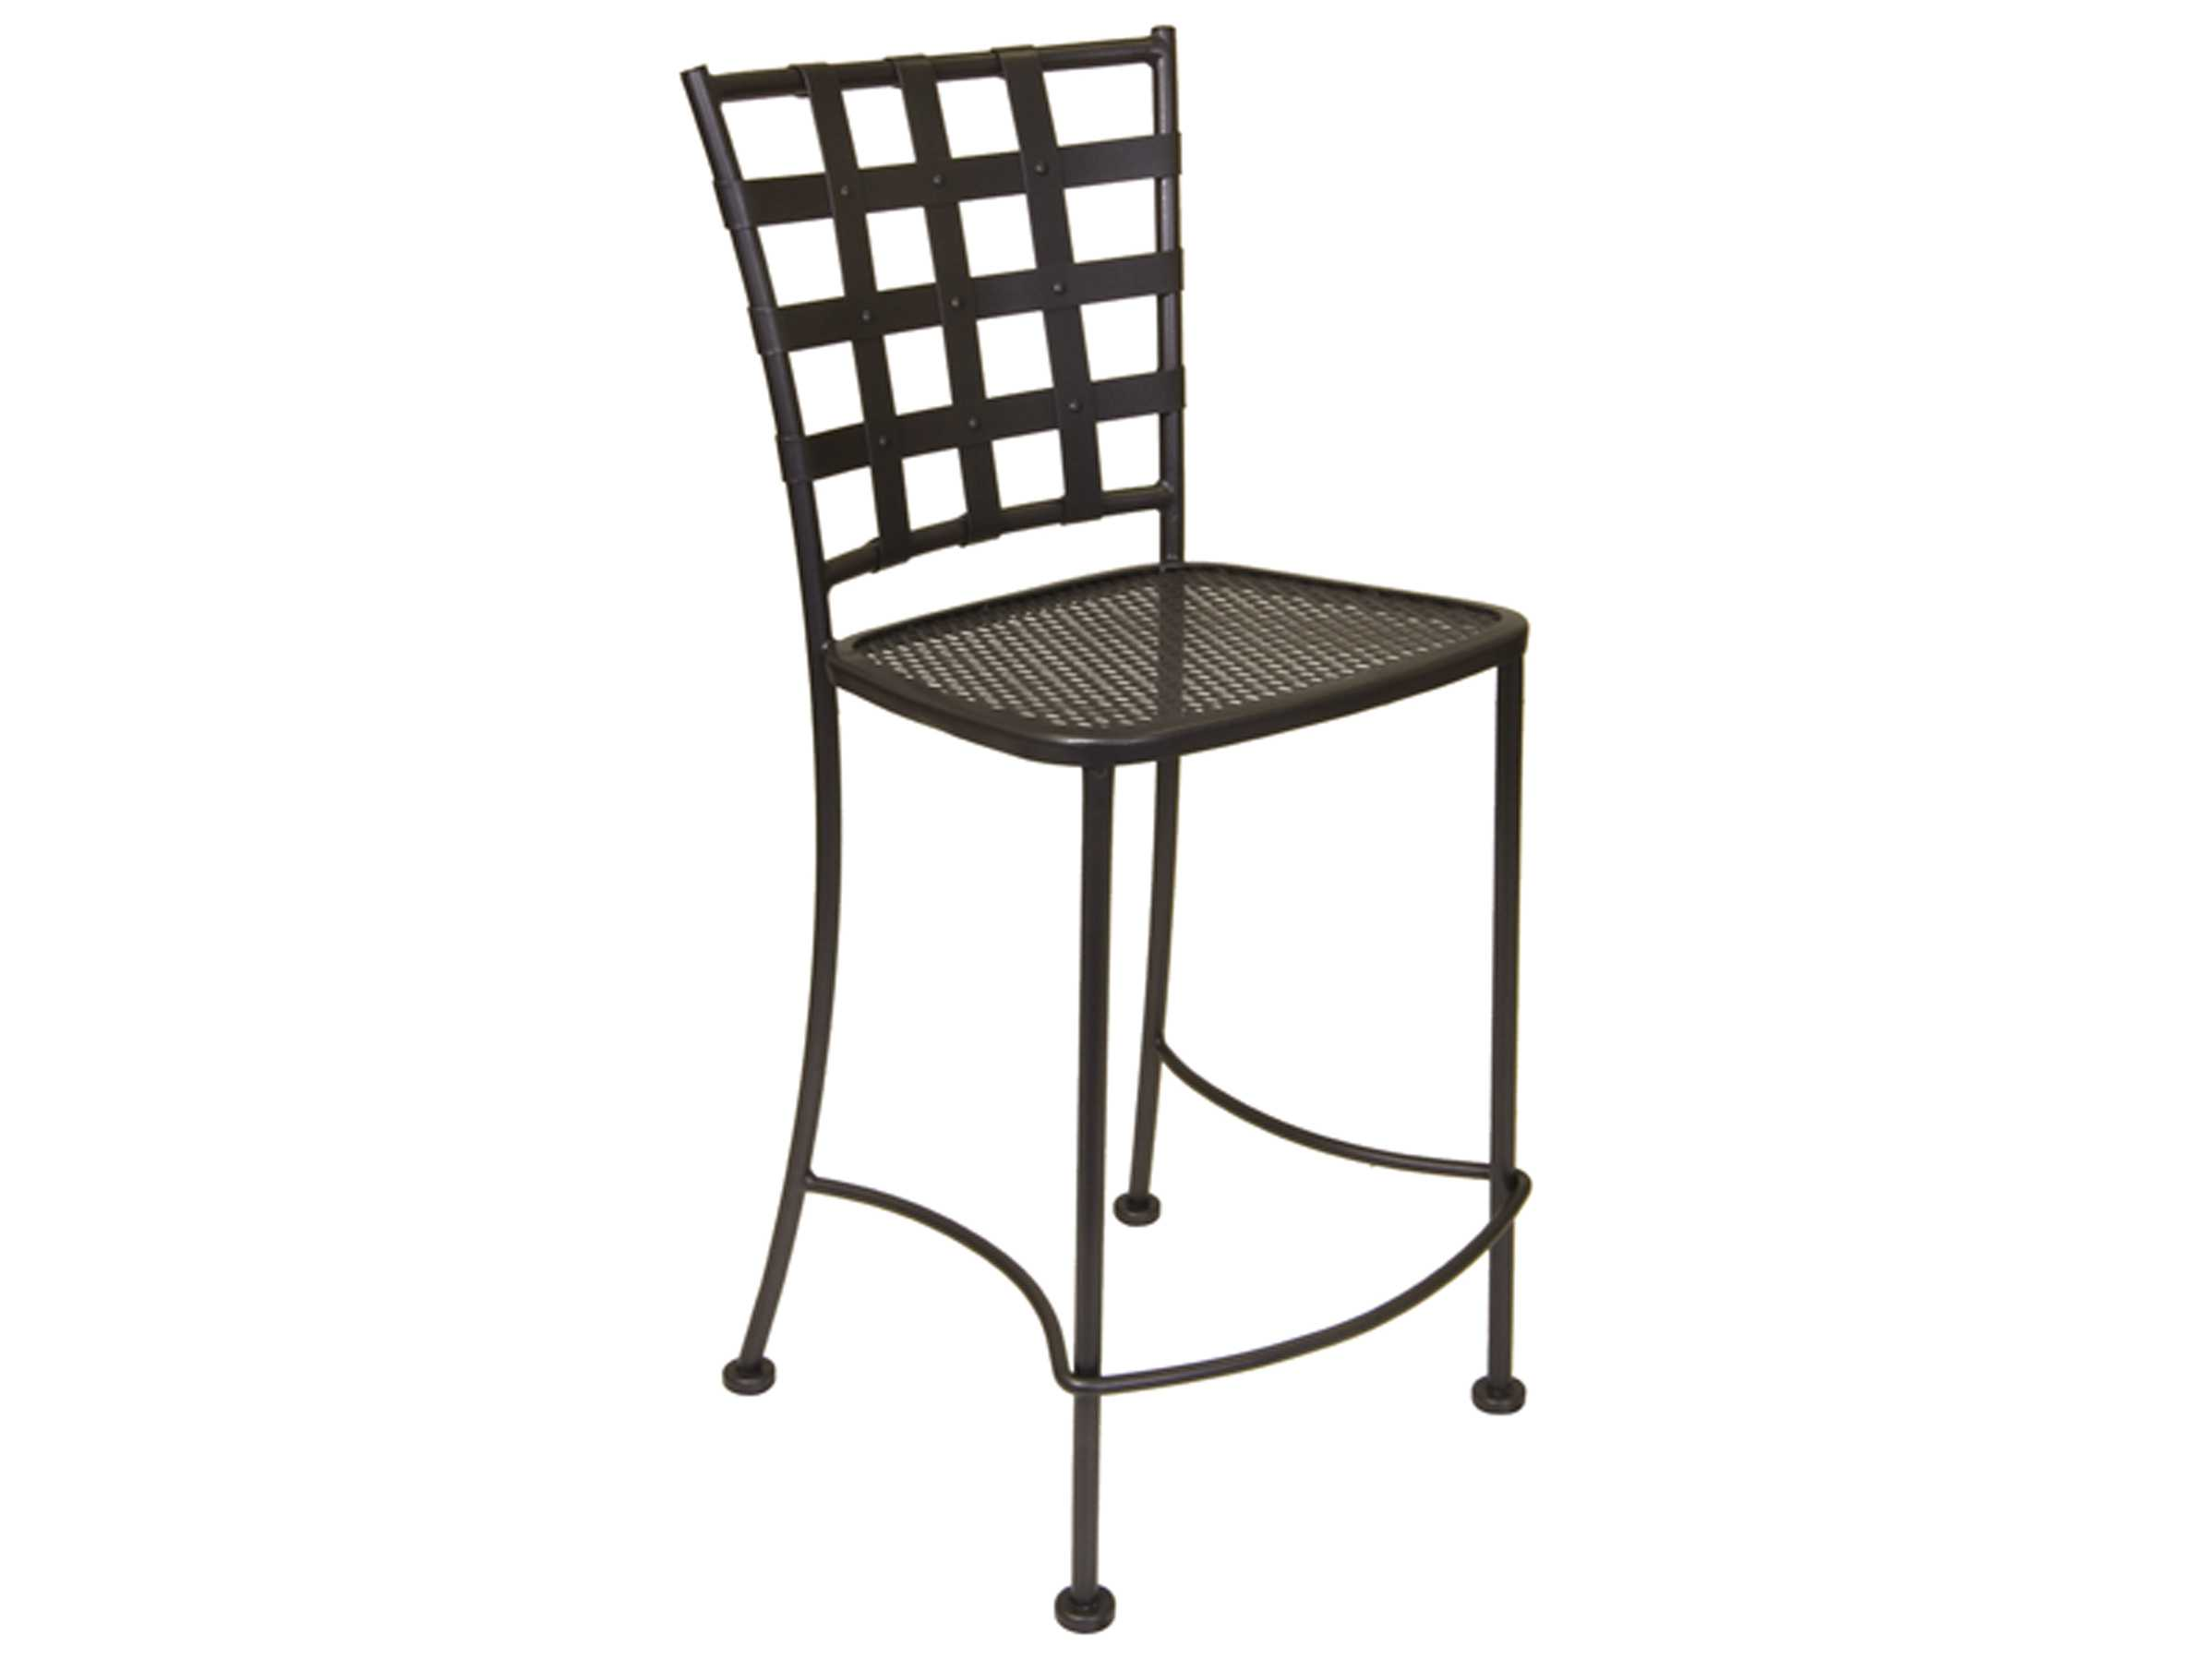 OW Lee Casa Counter Stool Replacement Cushions 716 CSCH : OW716CSzm from www.patioliving.com size 2396 x 1797 jpeg 67kB